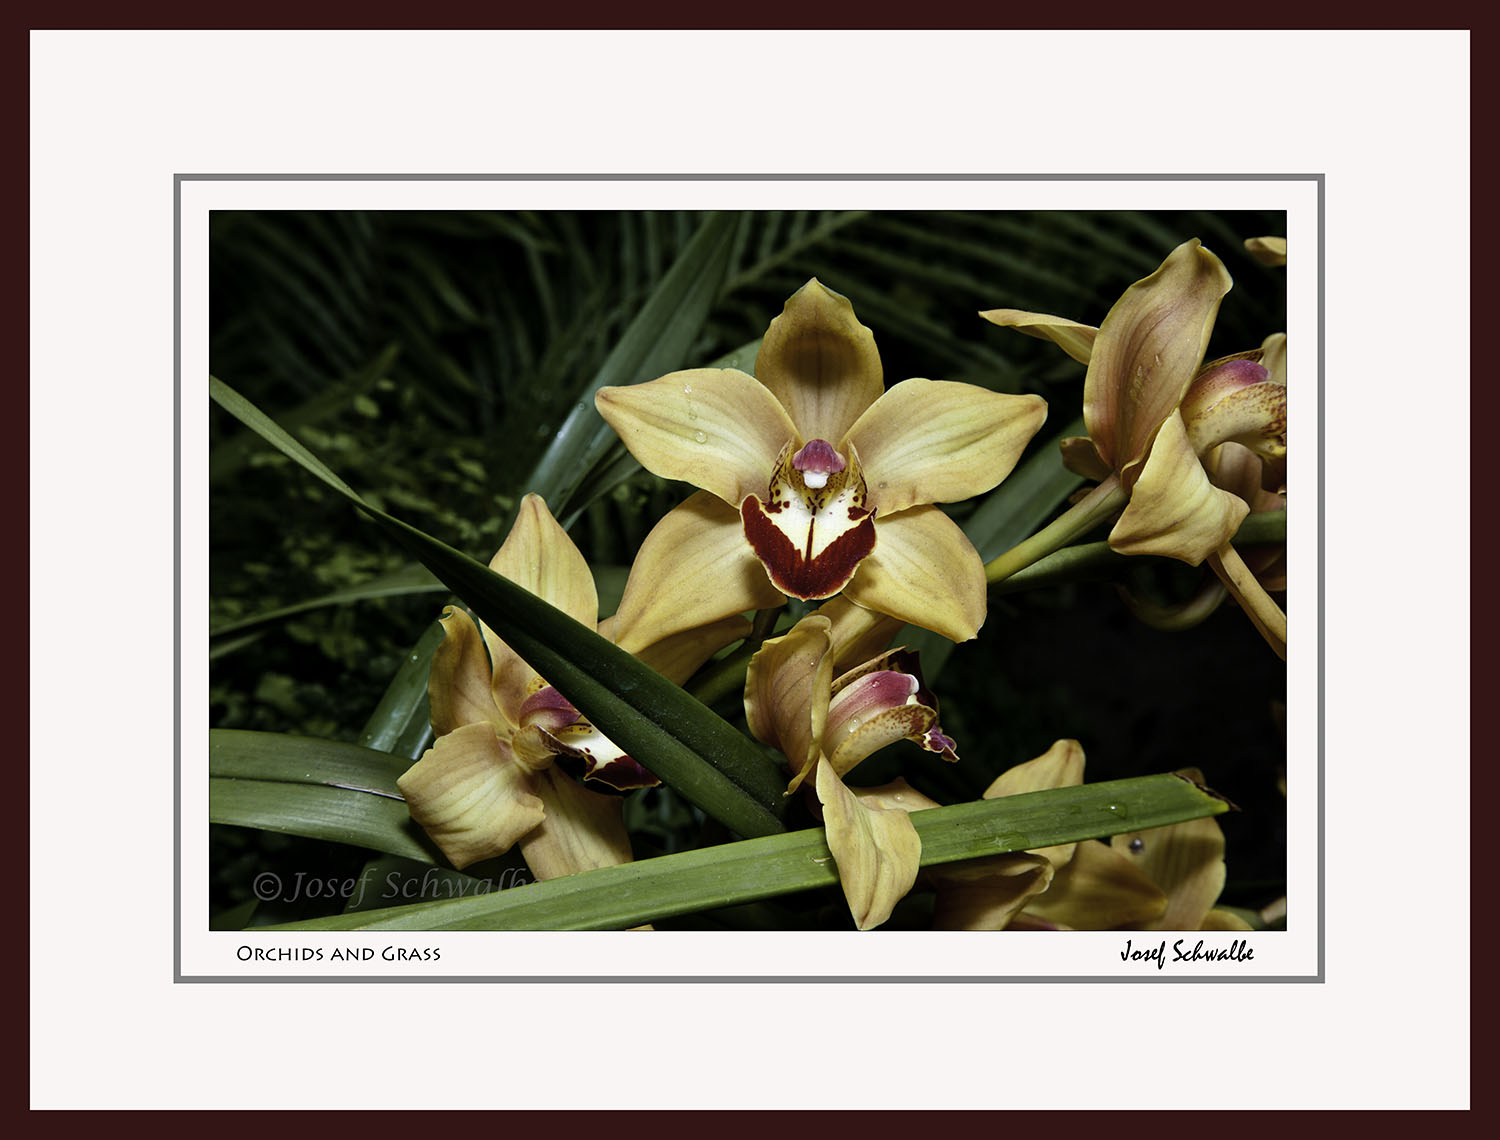 Orchids and Grass